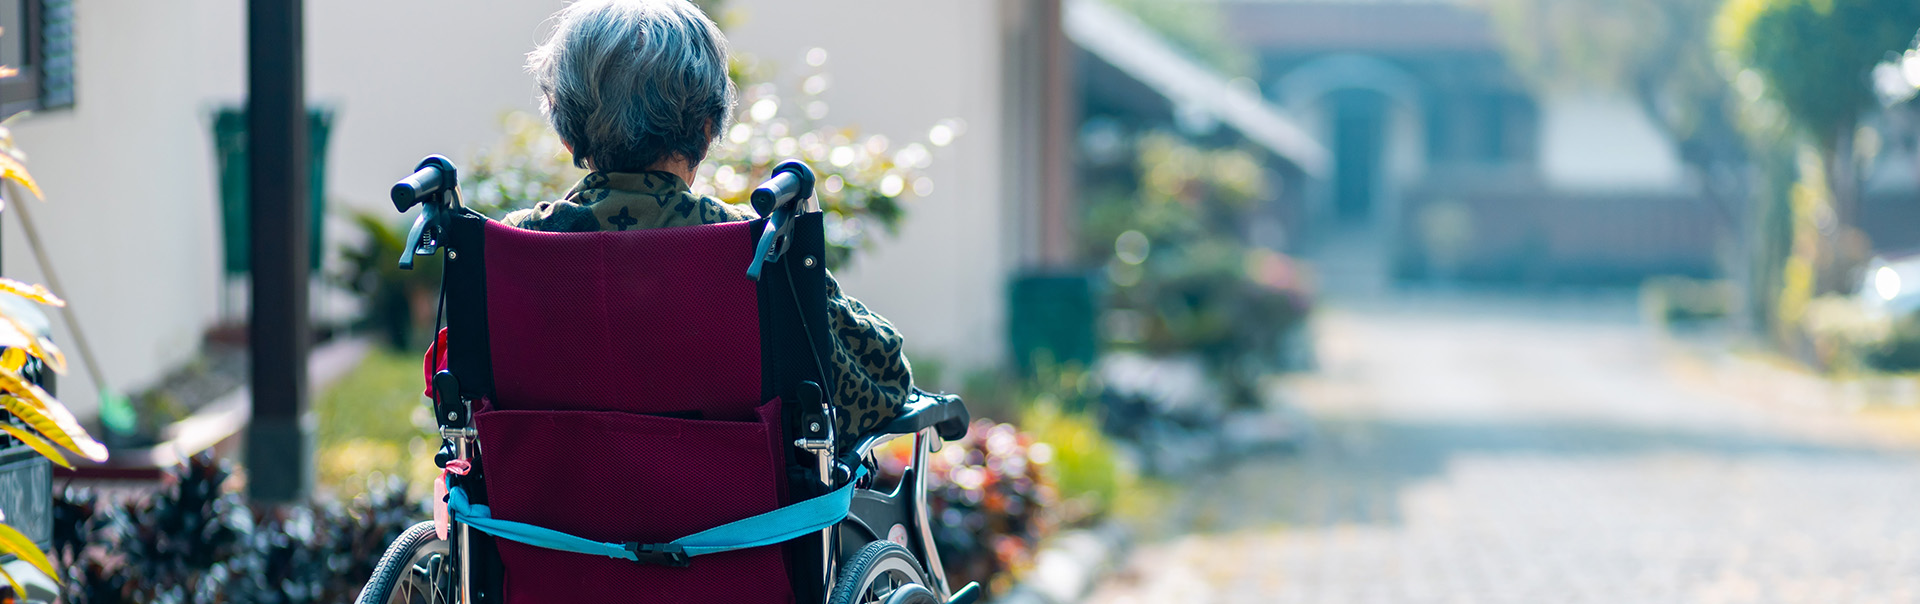 Woman in a wheelchair in an outdoor space.